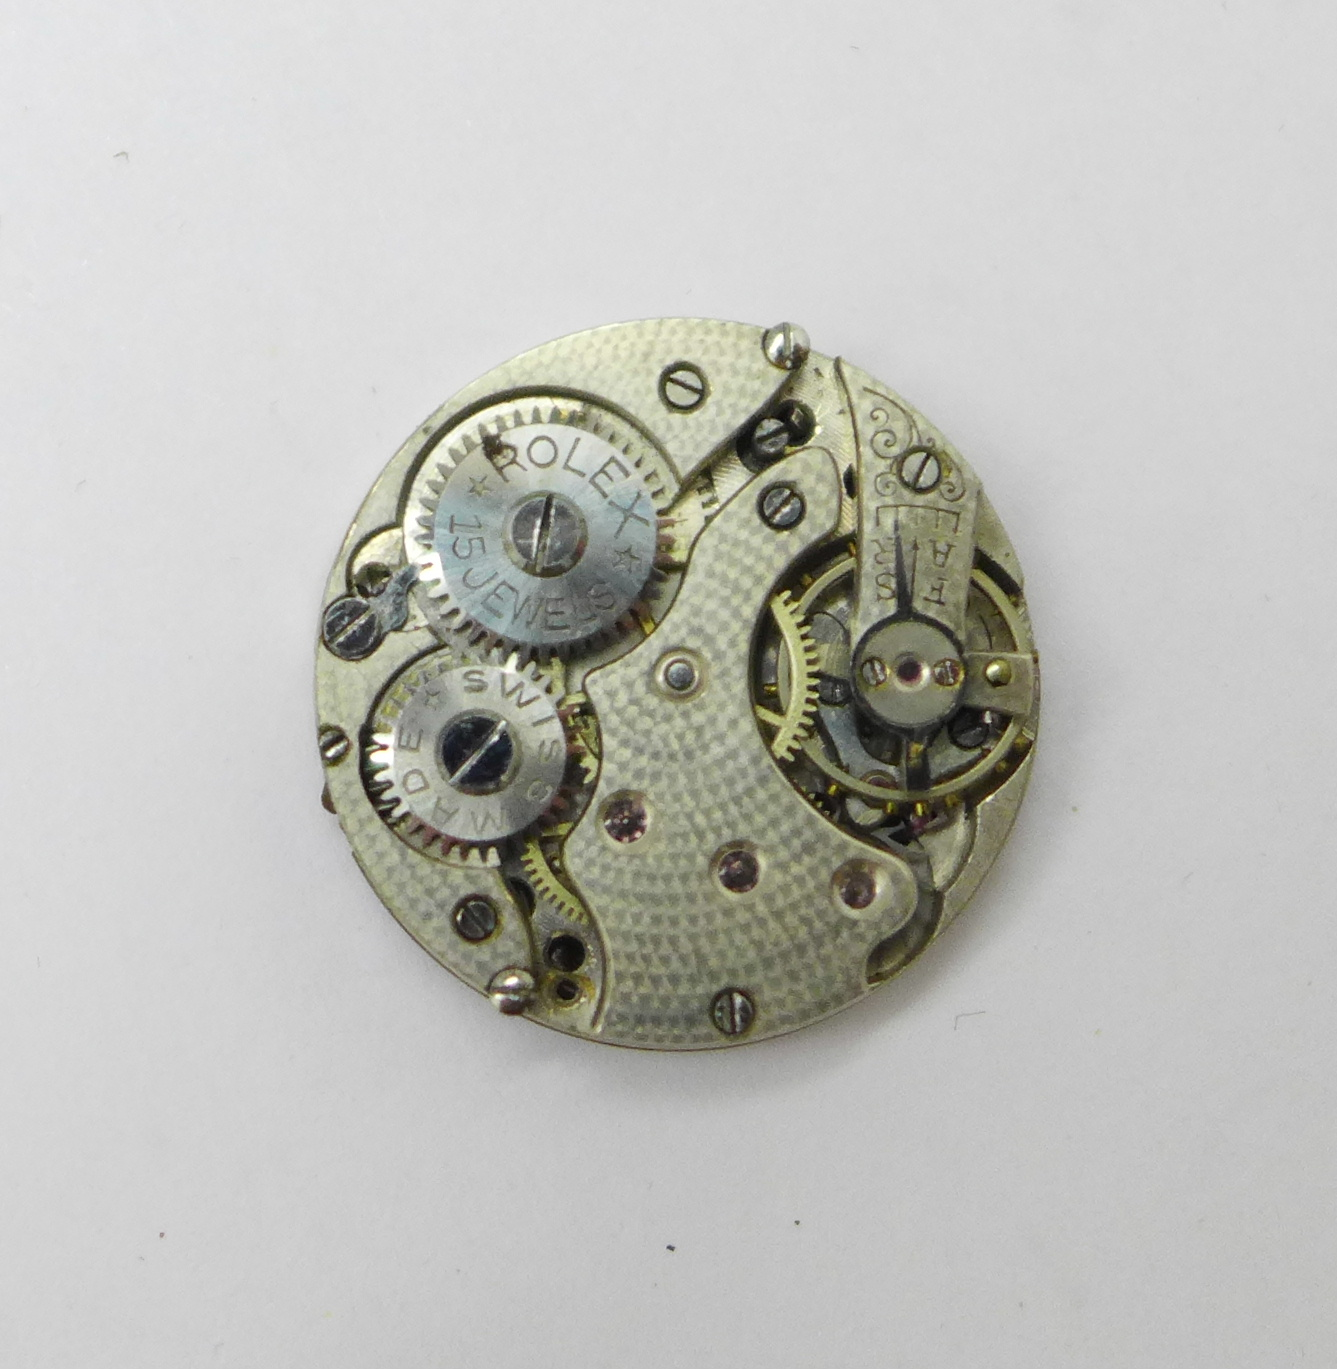 A Rolex wristwatch movement, 23mm, and a Waltham Giant gold plated full hunter pocket watch - Image 4 of 6